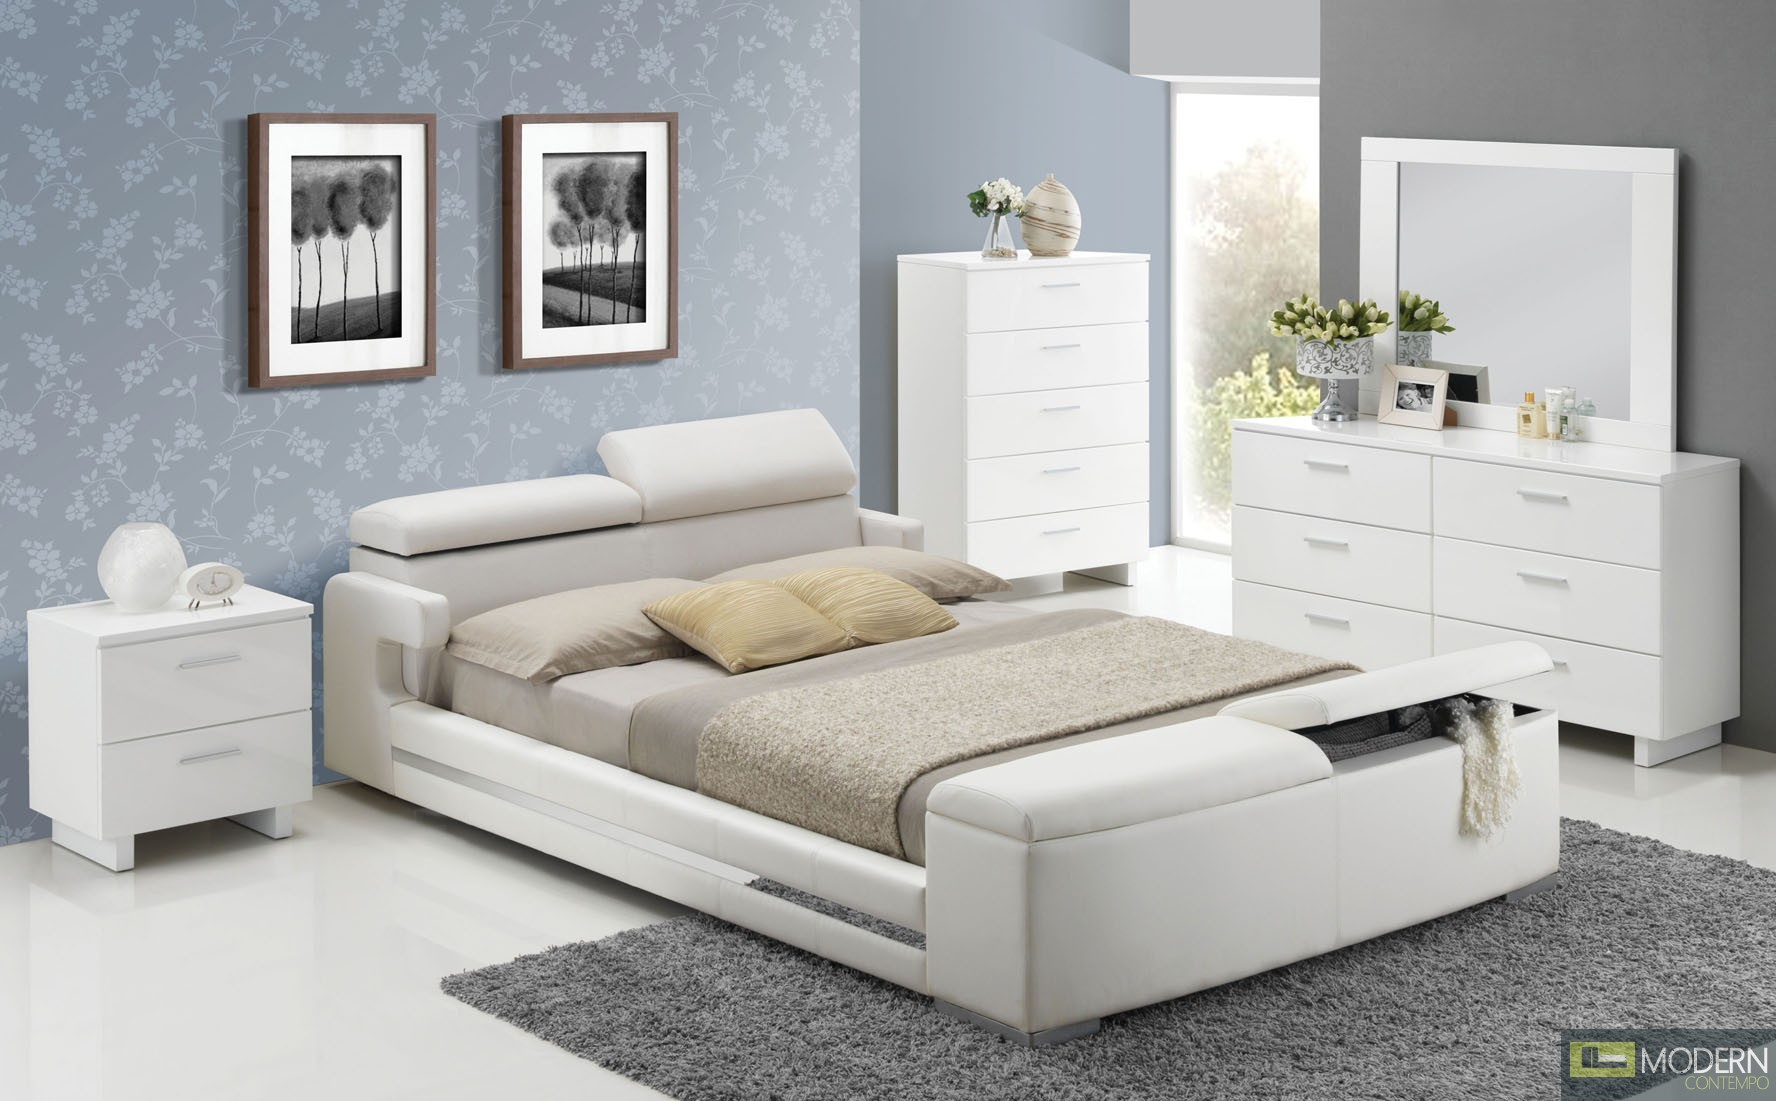 Modern Contemporary PU Upholstered Bed White Leatherette w/Storage